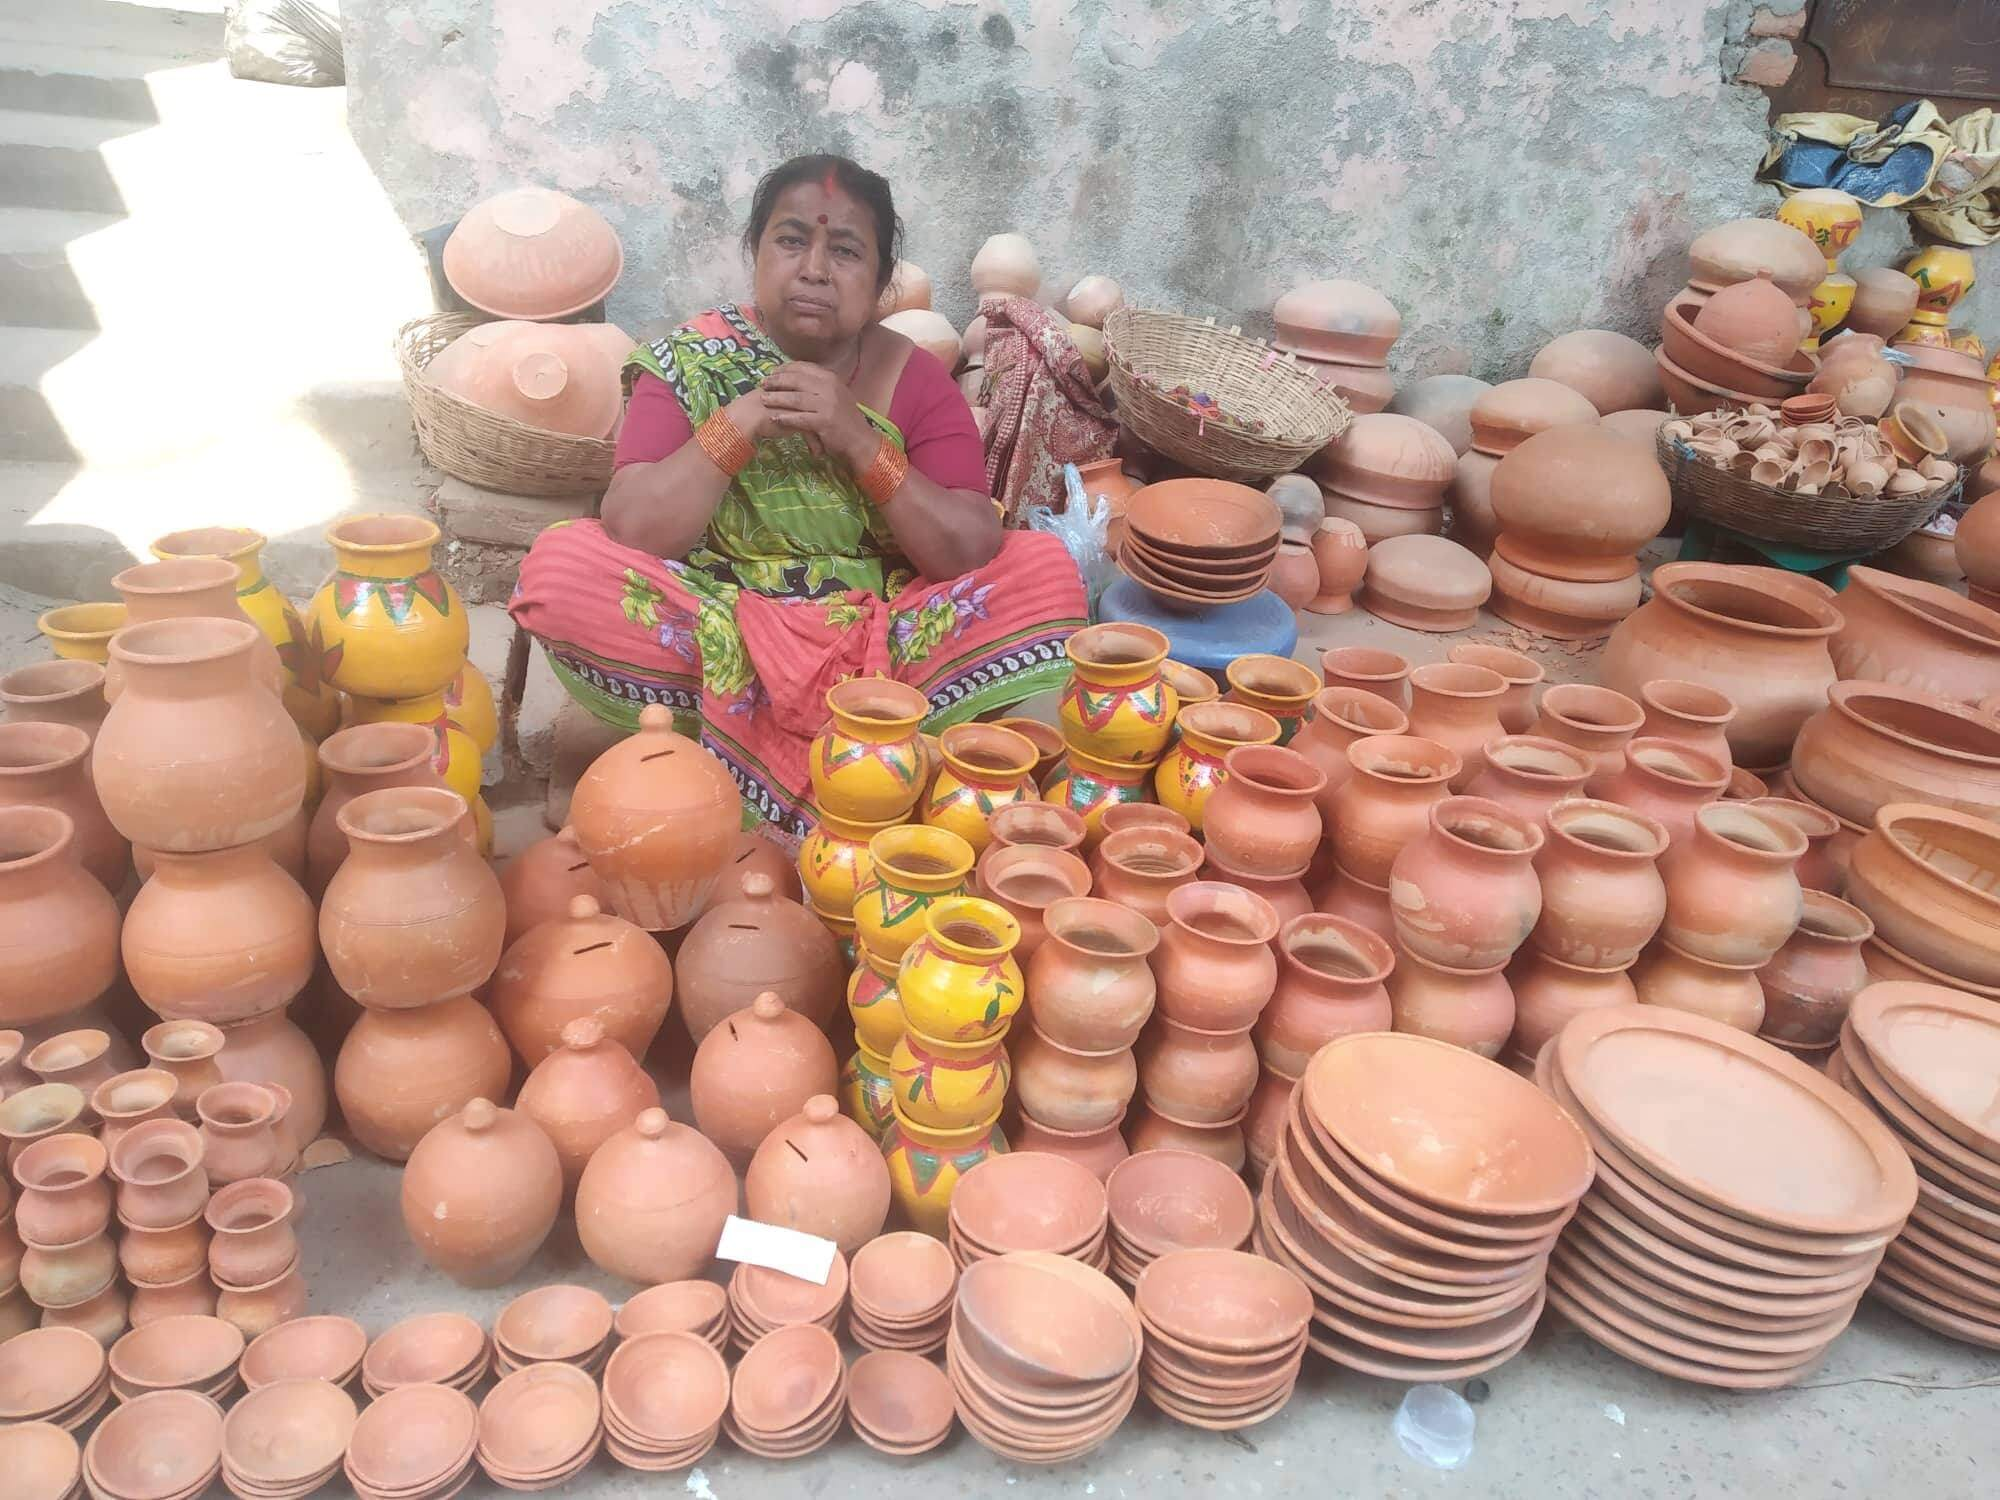 Women sell traditional pottery in Birgunj on Wednesday, some With holi decorations.